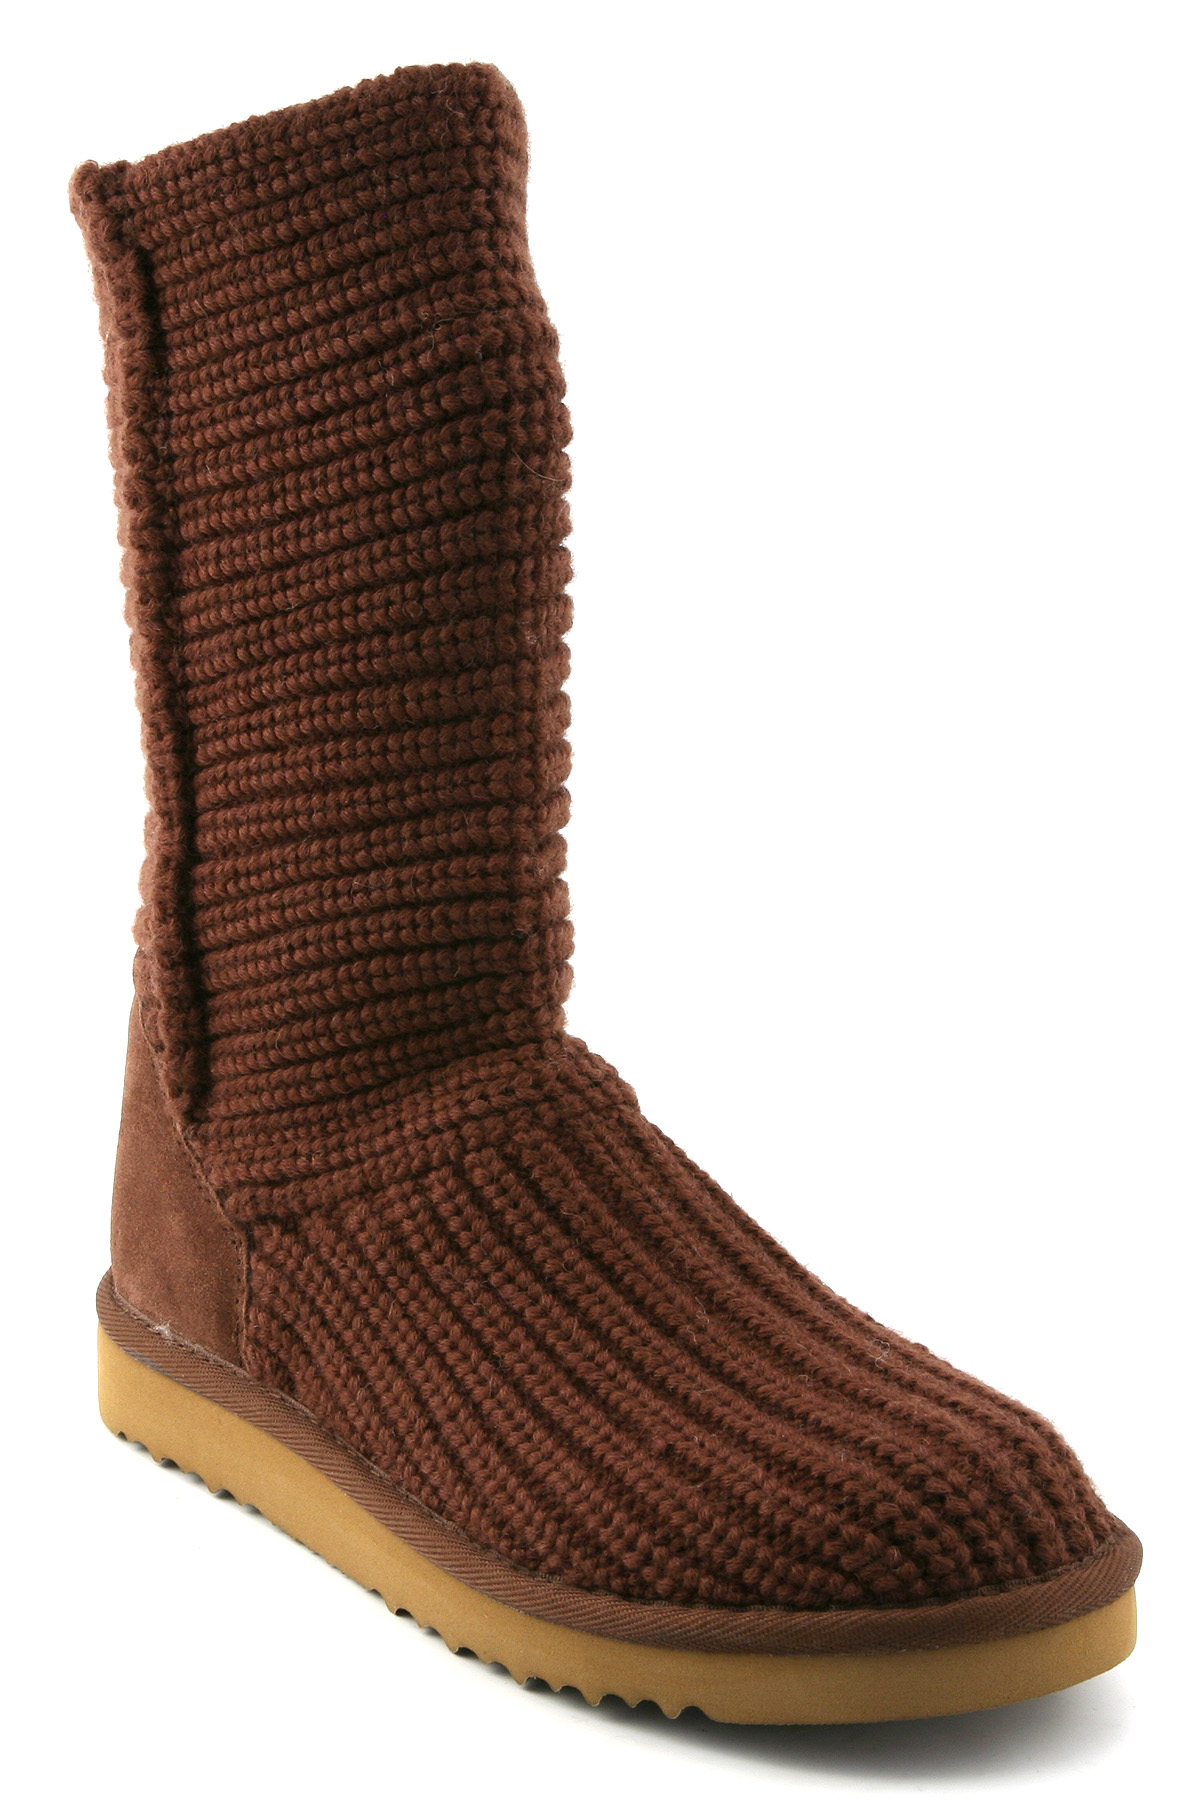 Ugg Crochet Short Boot Chocolate in Brown (chocolate) Lyst